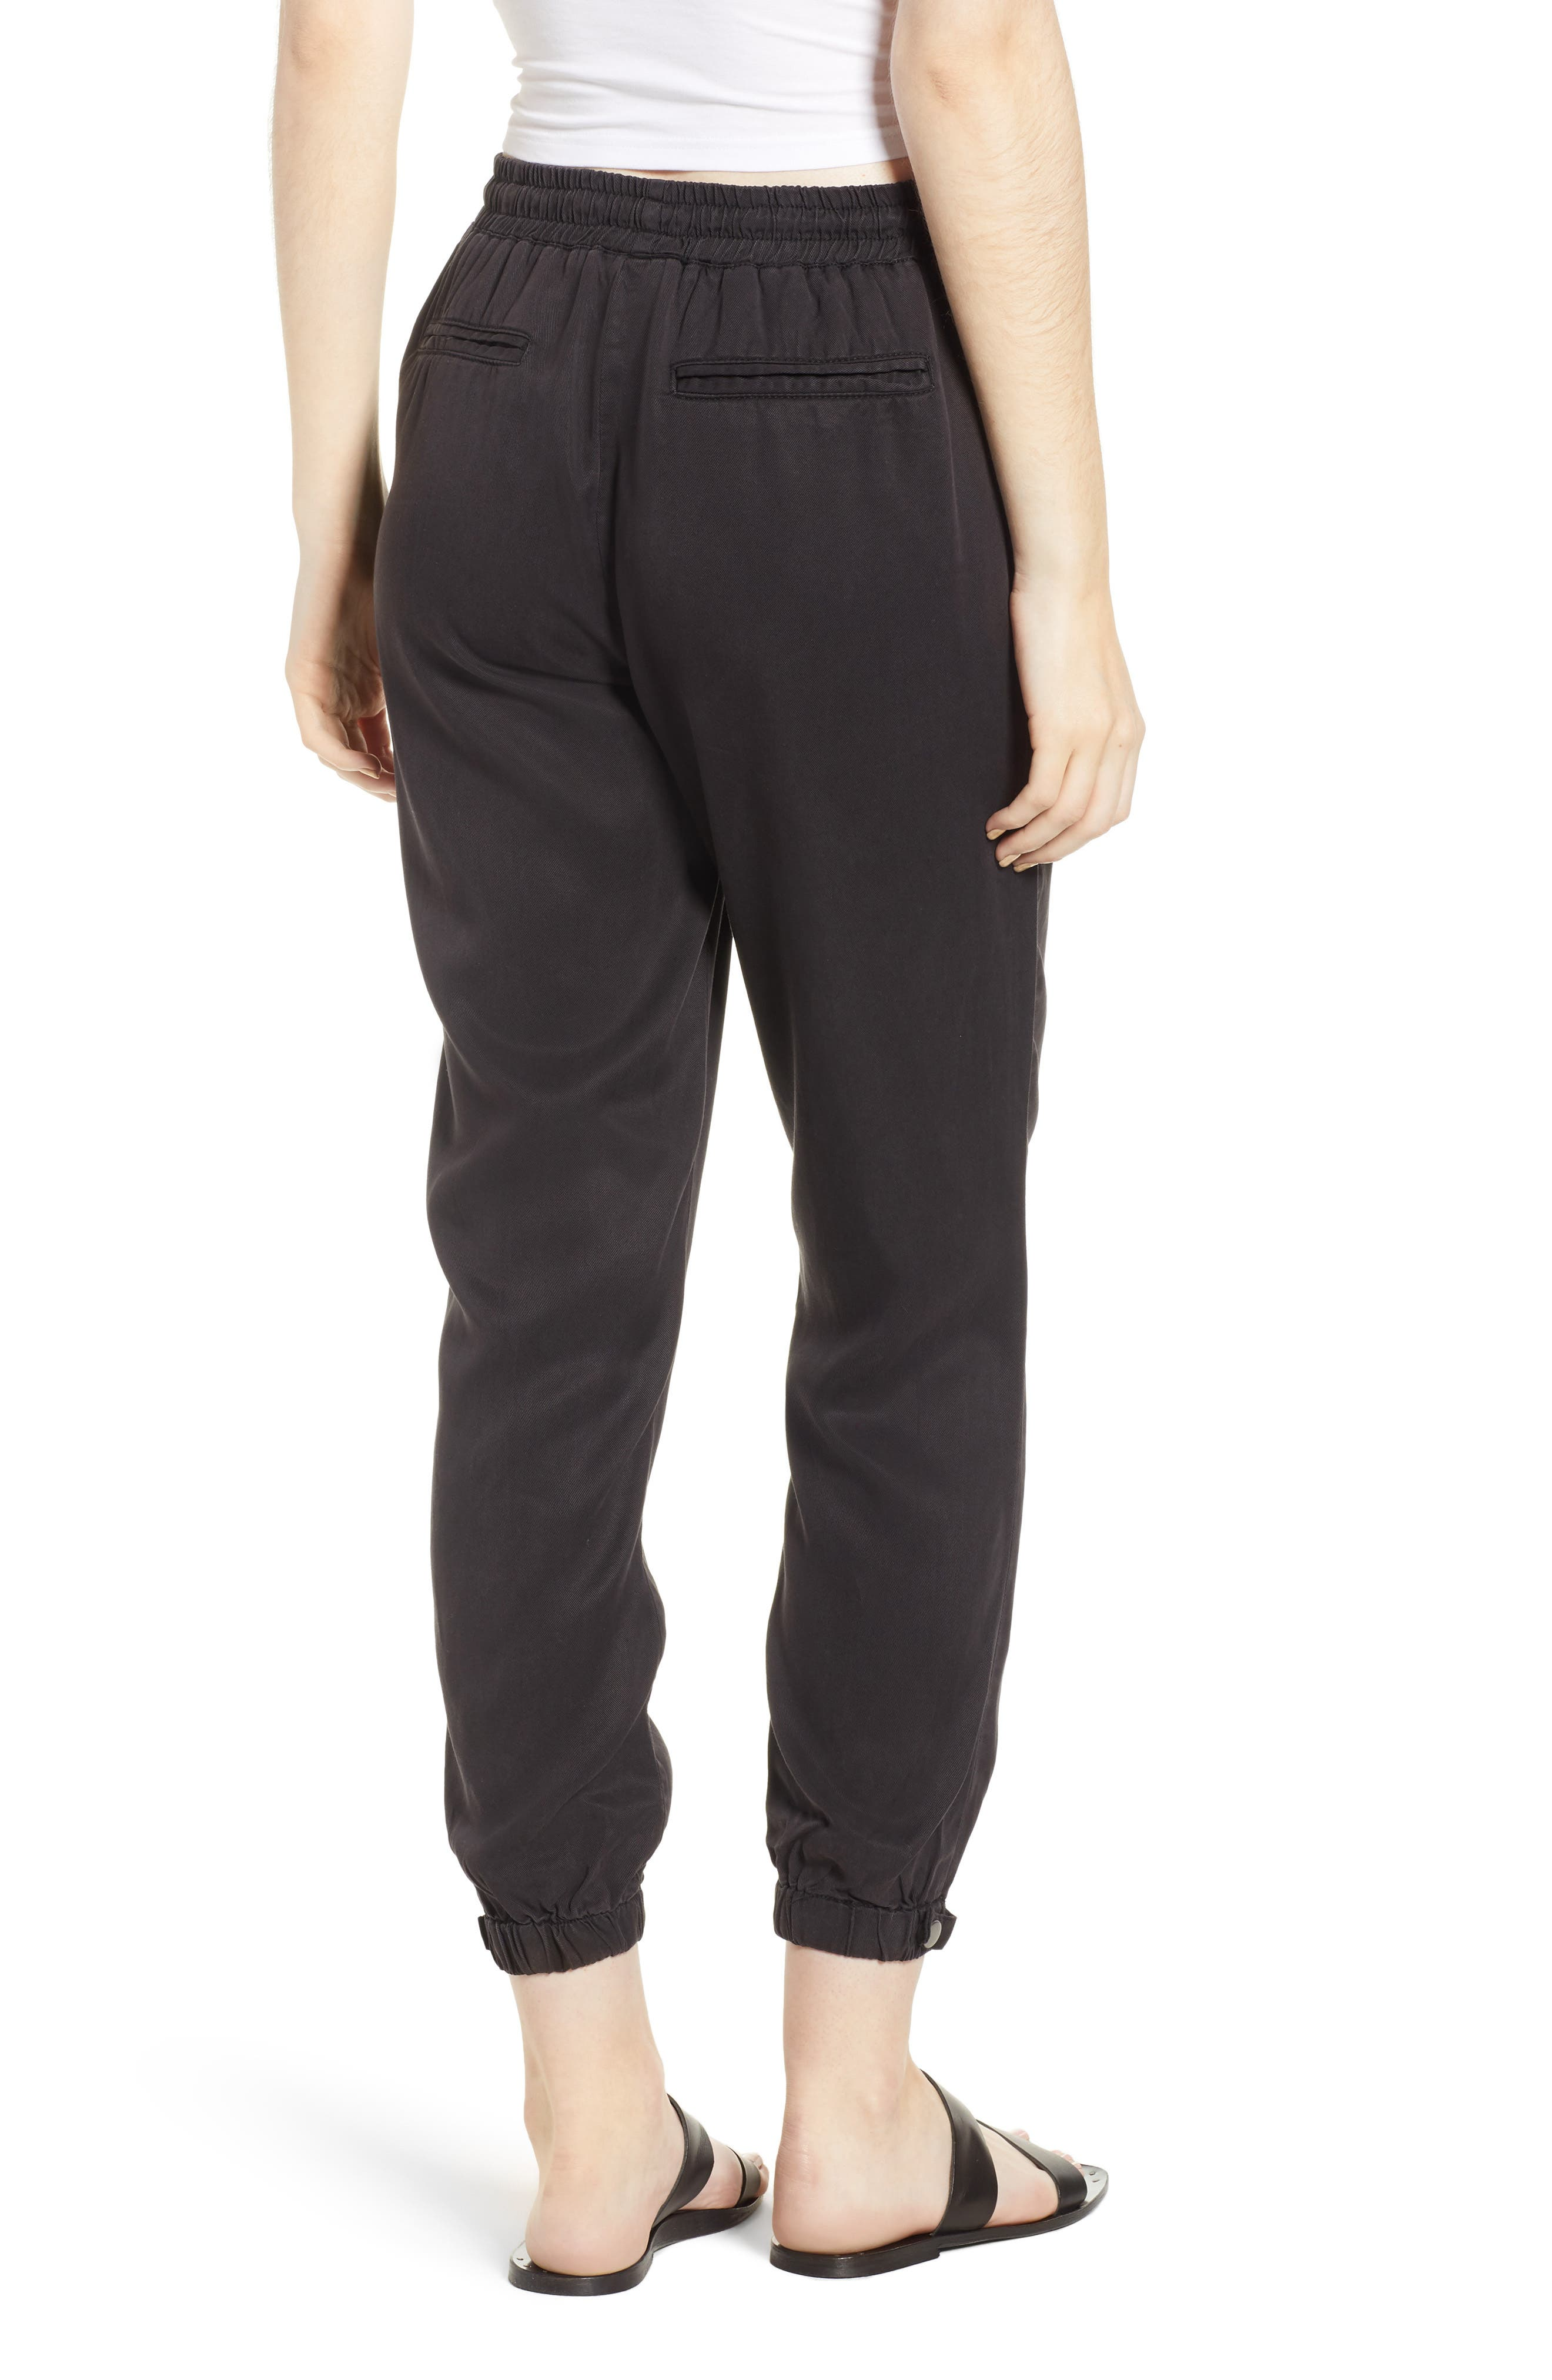 THREAD & SUPPLY,                             Serena Joggers,                             Alternate thumbnail 2, color,                             001